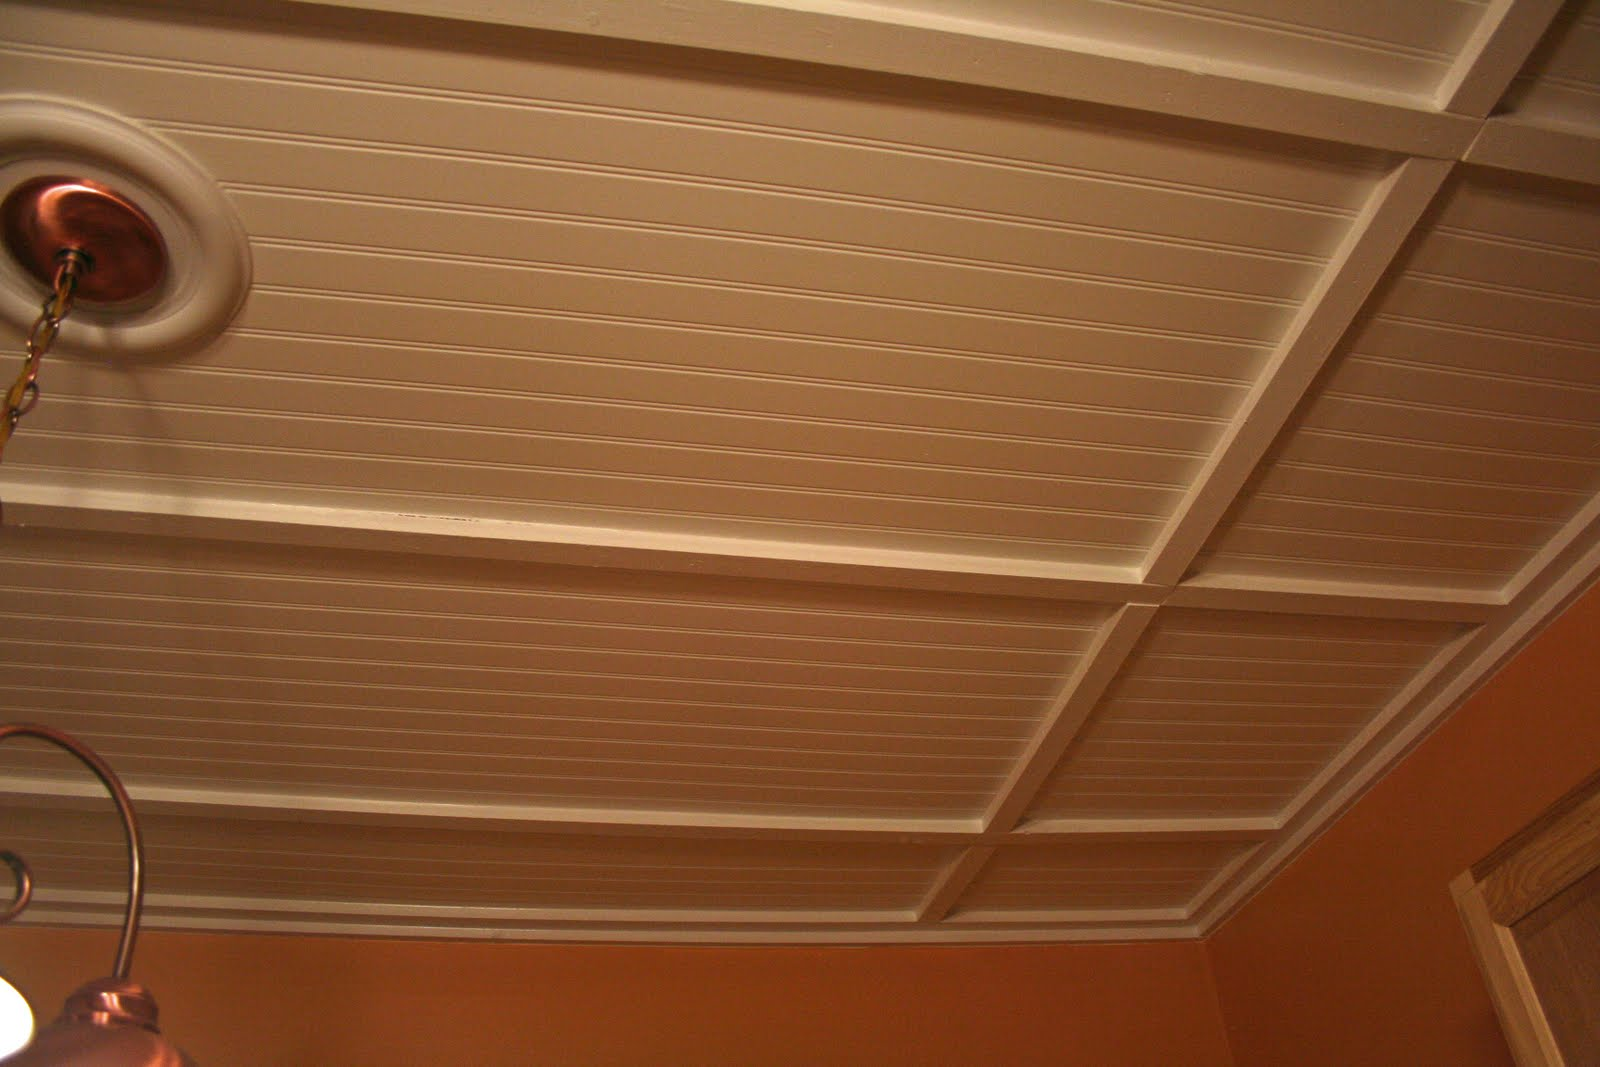 Superb img of Wood Drop Ceiling Tiles This is the new ceiling with #A36C28 color and 1600x1067 pixels